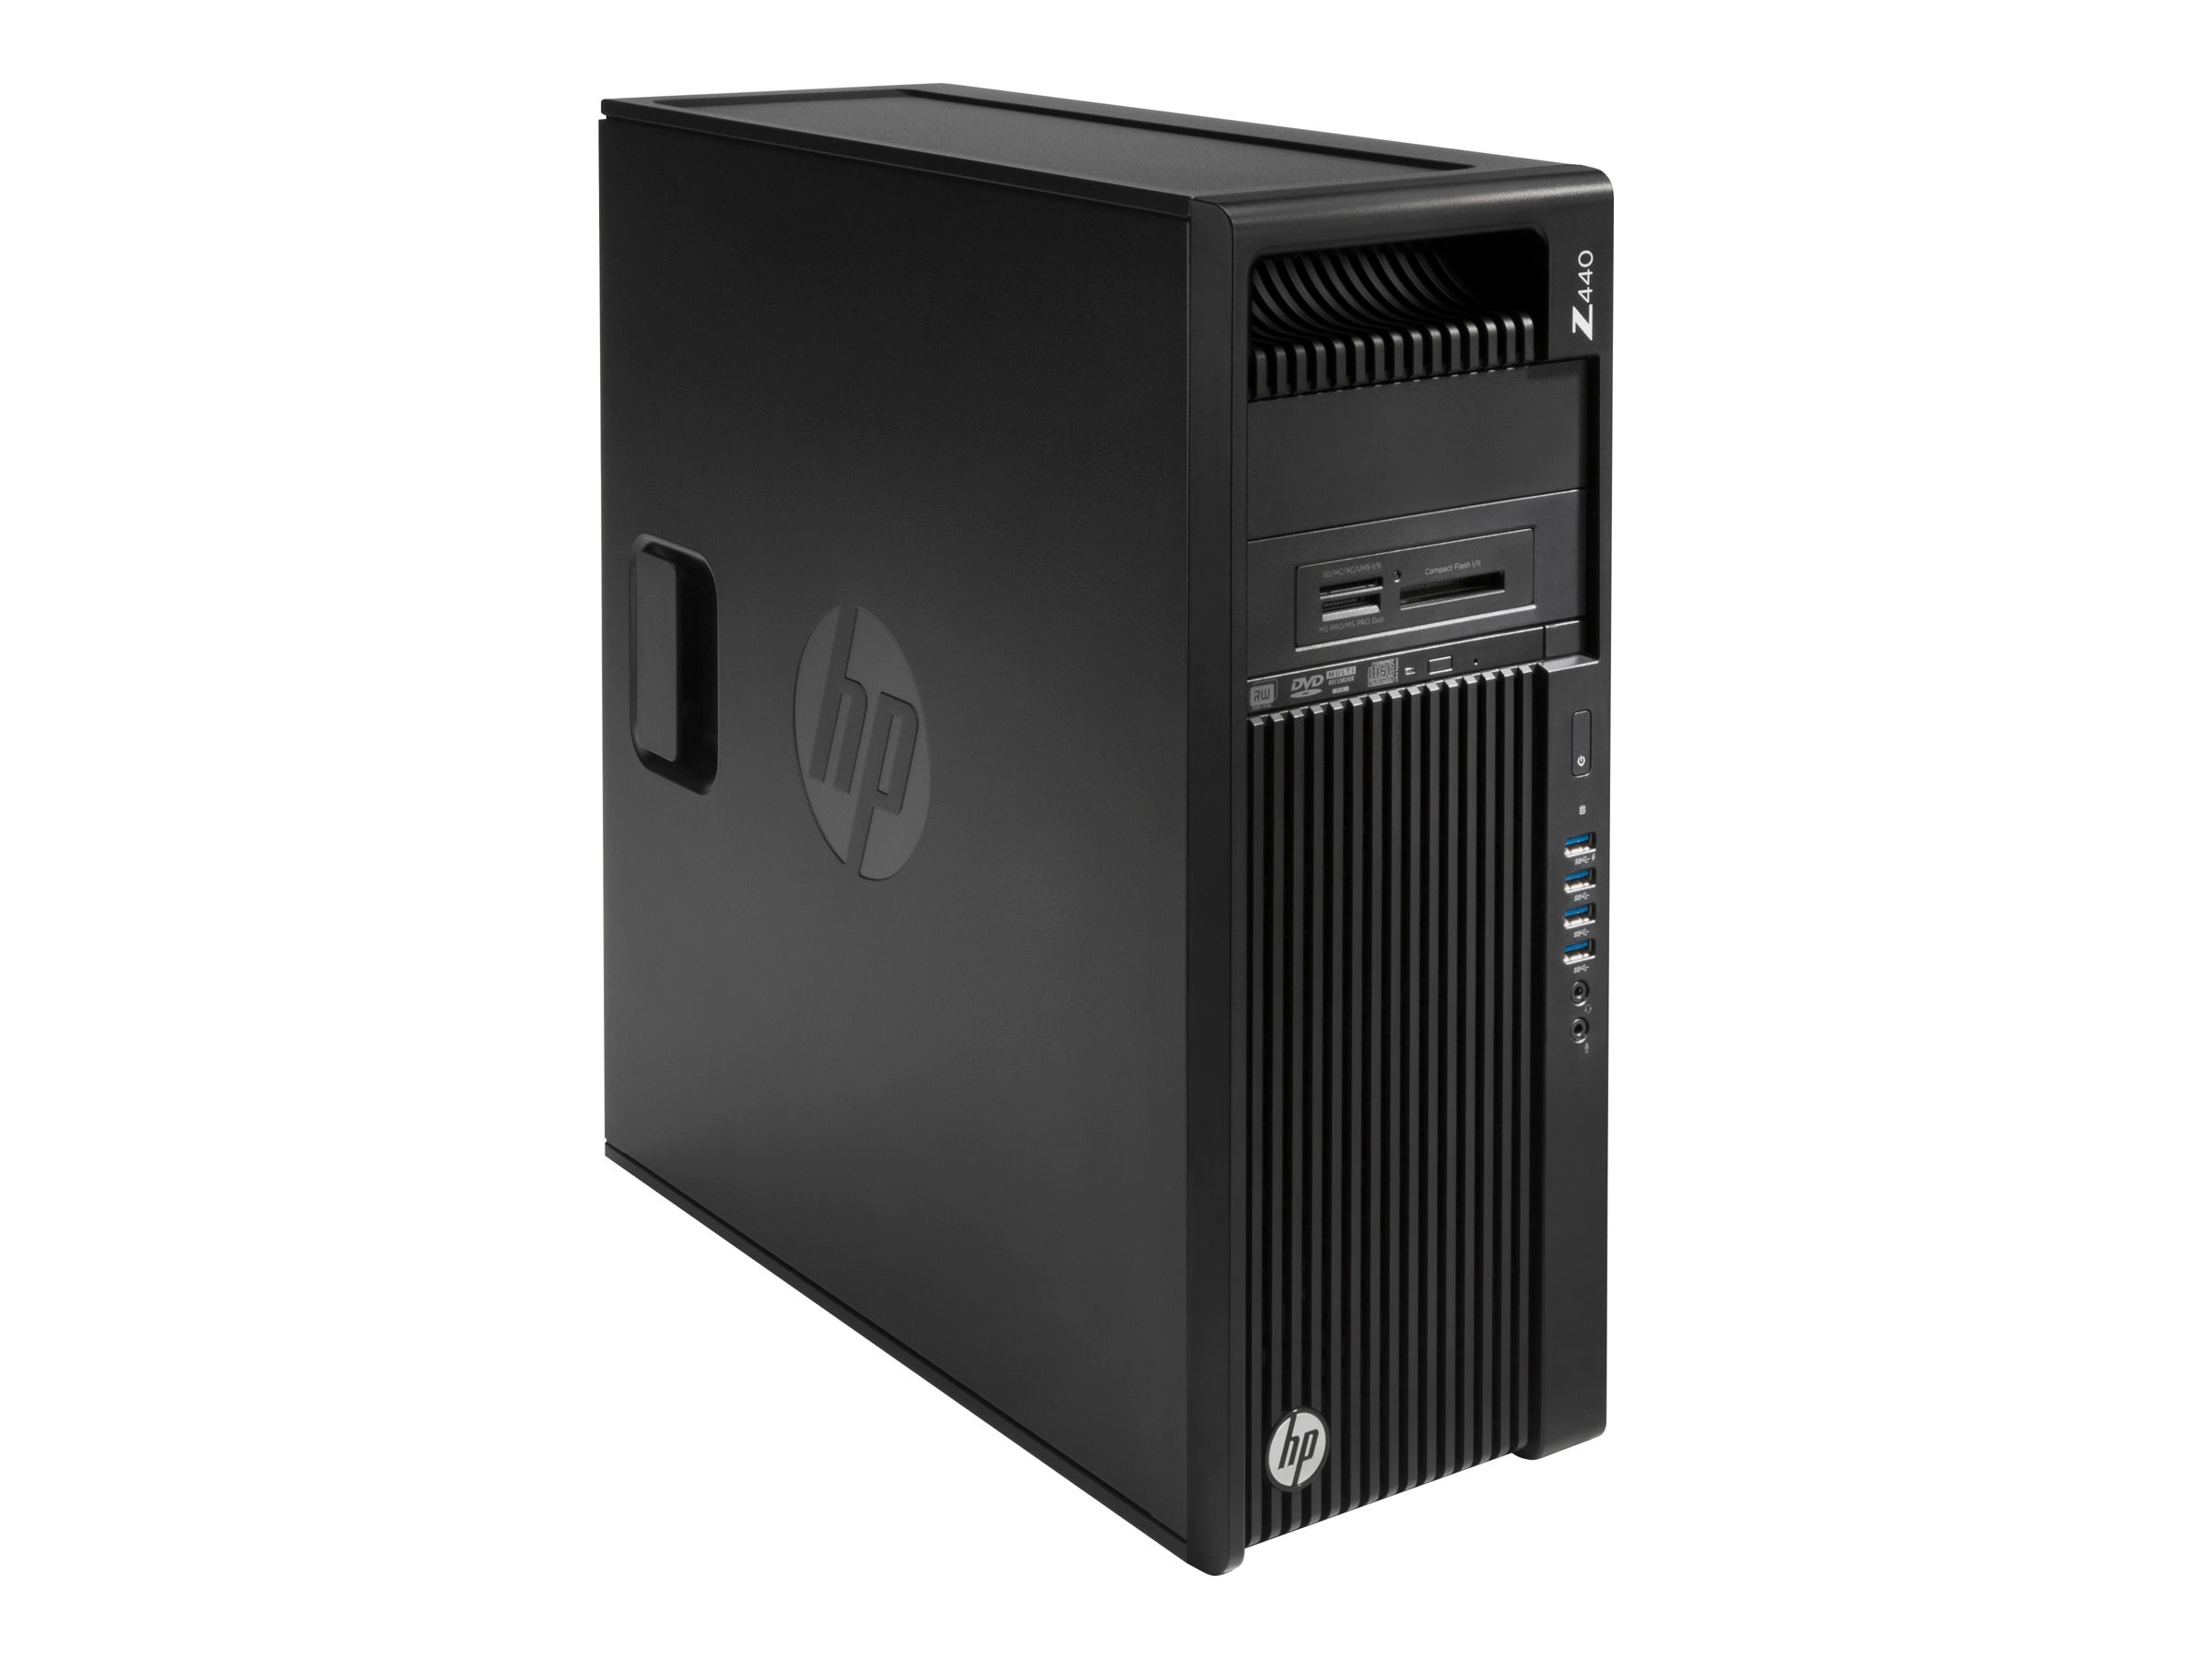 HP Z440 3.6GHz Xeon Microsoft Windows 7 Professional 64-bit Edition   Windows 10 Pro, W9Z10UT#ABA